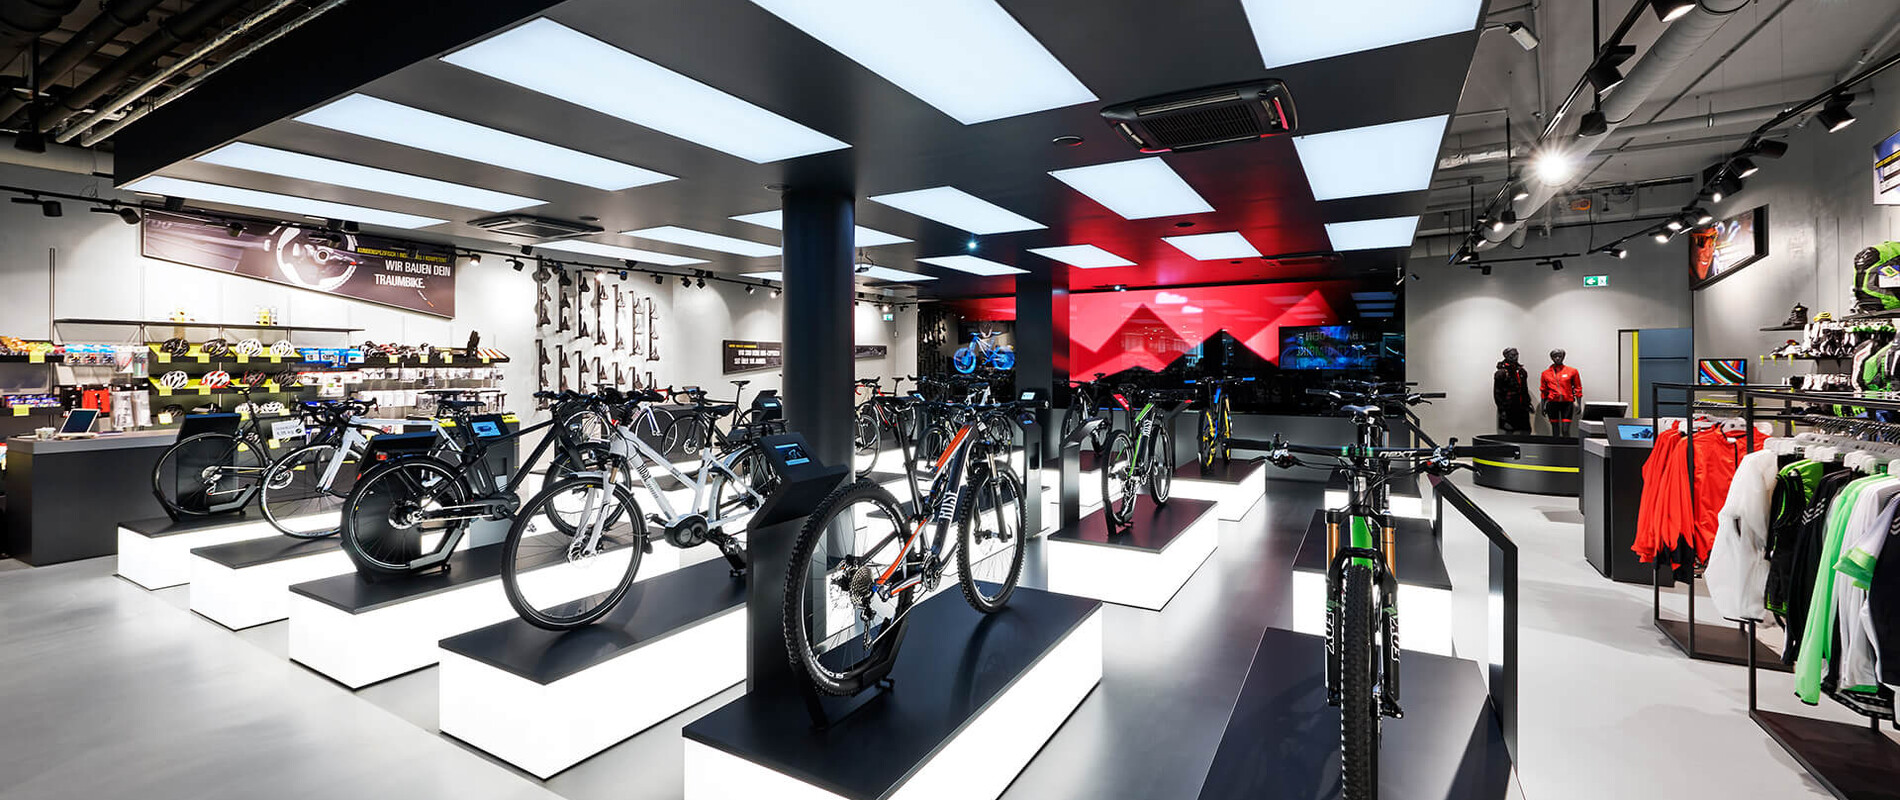 bike sports specialist store - new conception - Rose Biketown Munich - inside store overview - bike display luminescent podiums - led wall in back